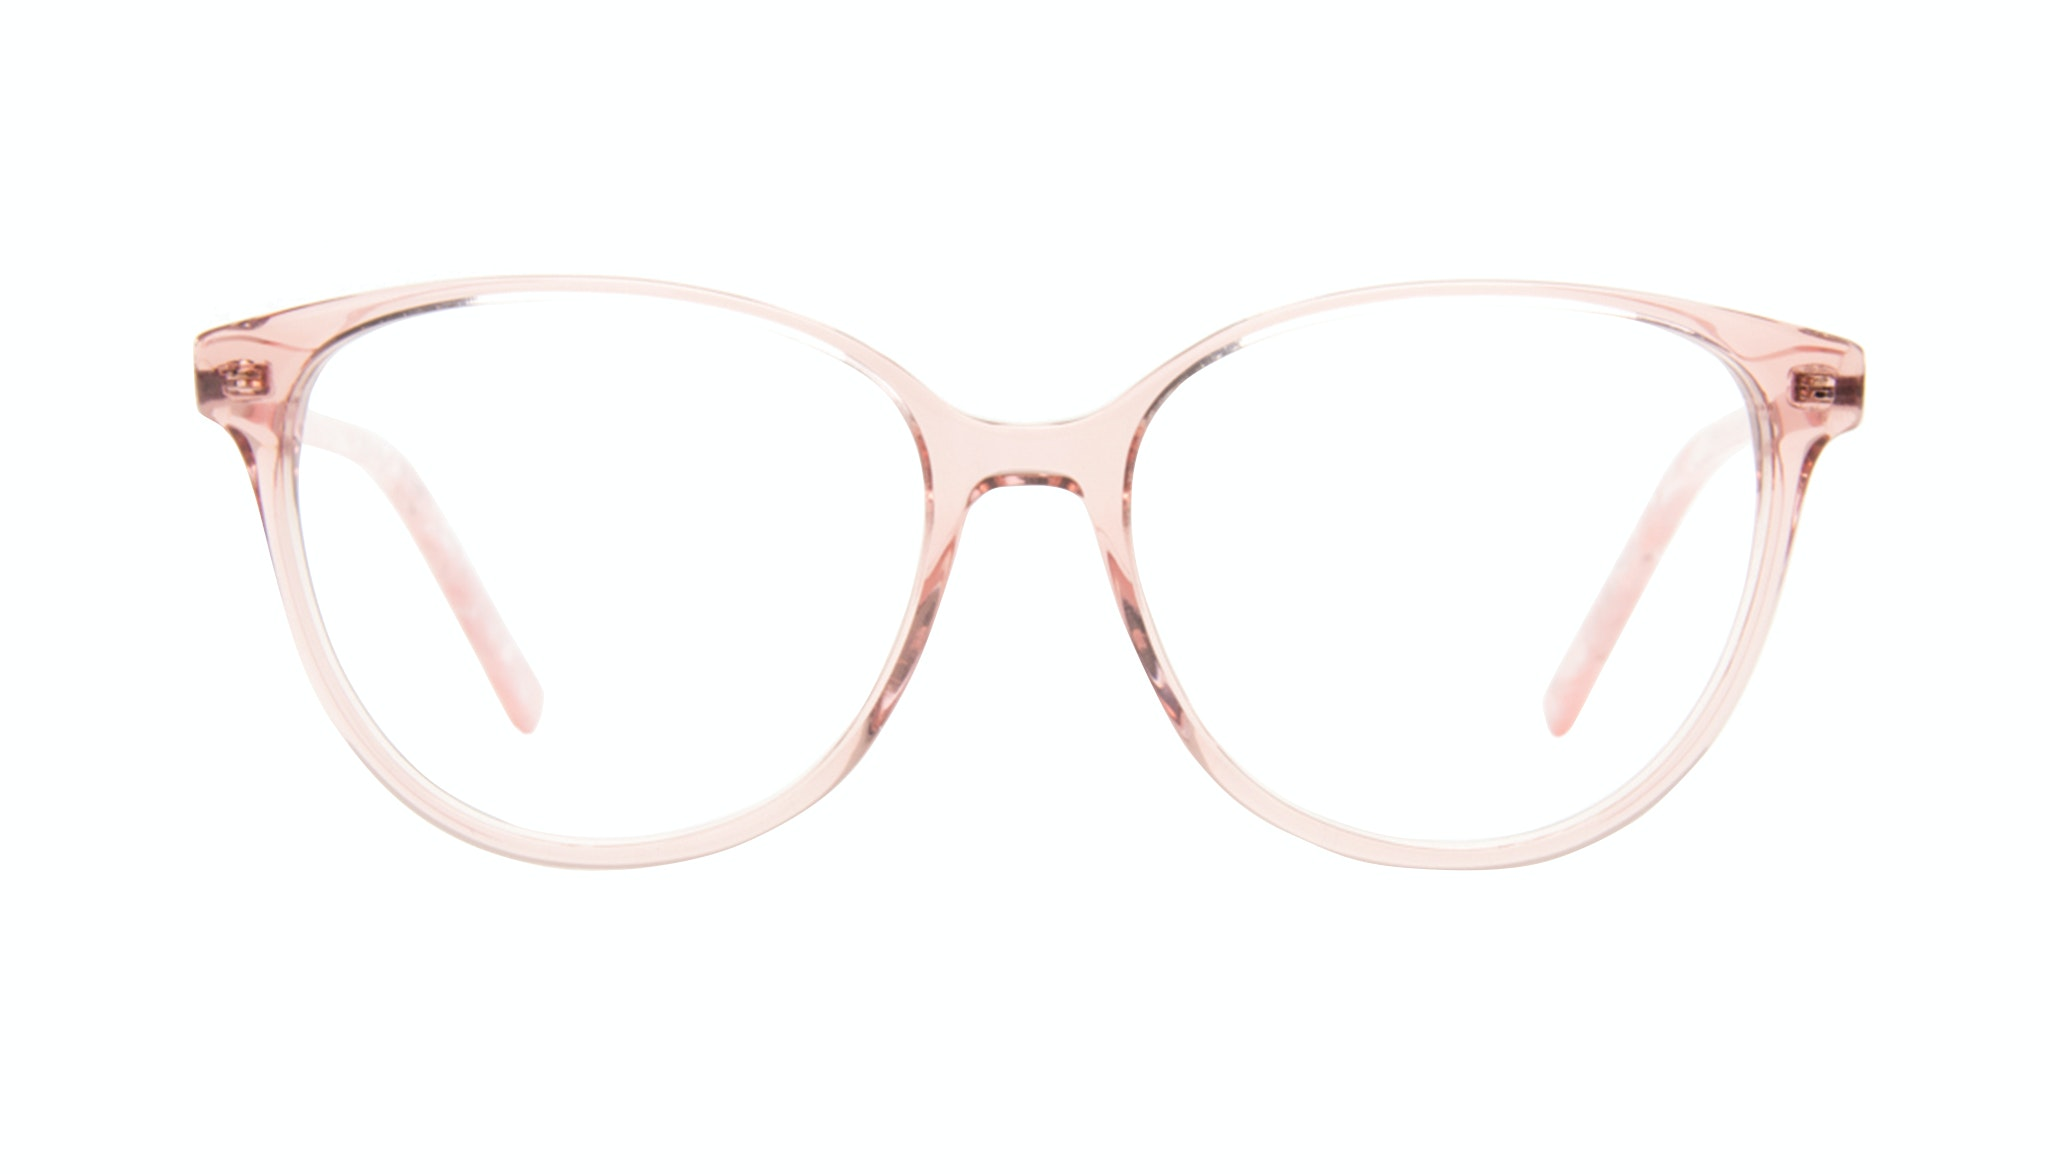 Affordable Fashion Glasses Round Eyeglasses Women Imagine II Rose Marble